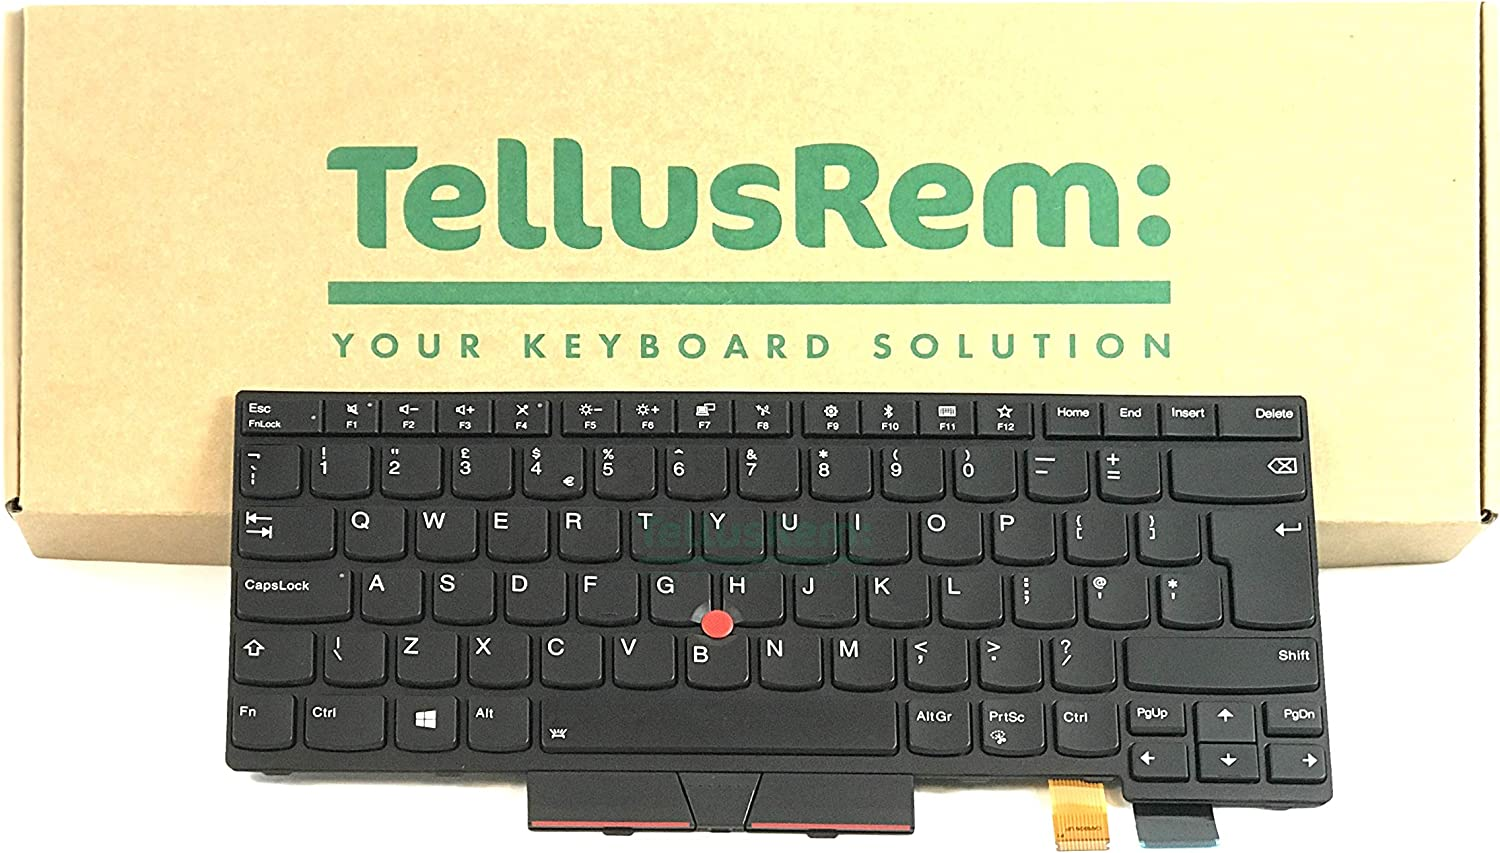 New Never Used Replacement Keyboard for Lenovo Thinkpad T470 T480 with Backlight US Layout